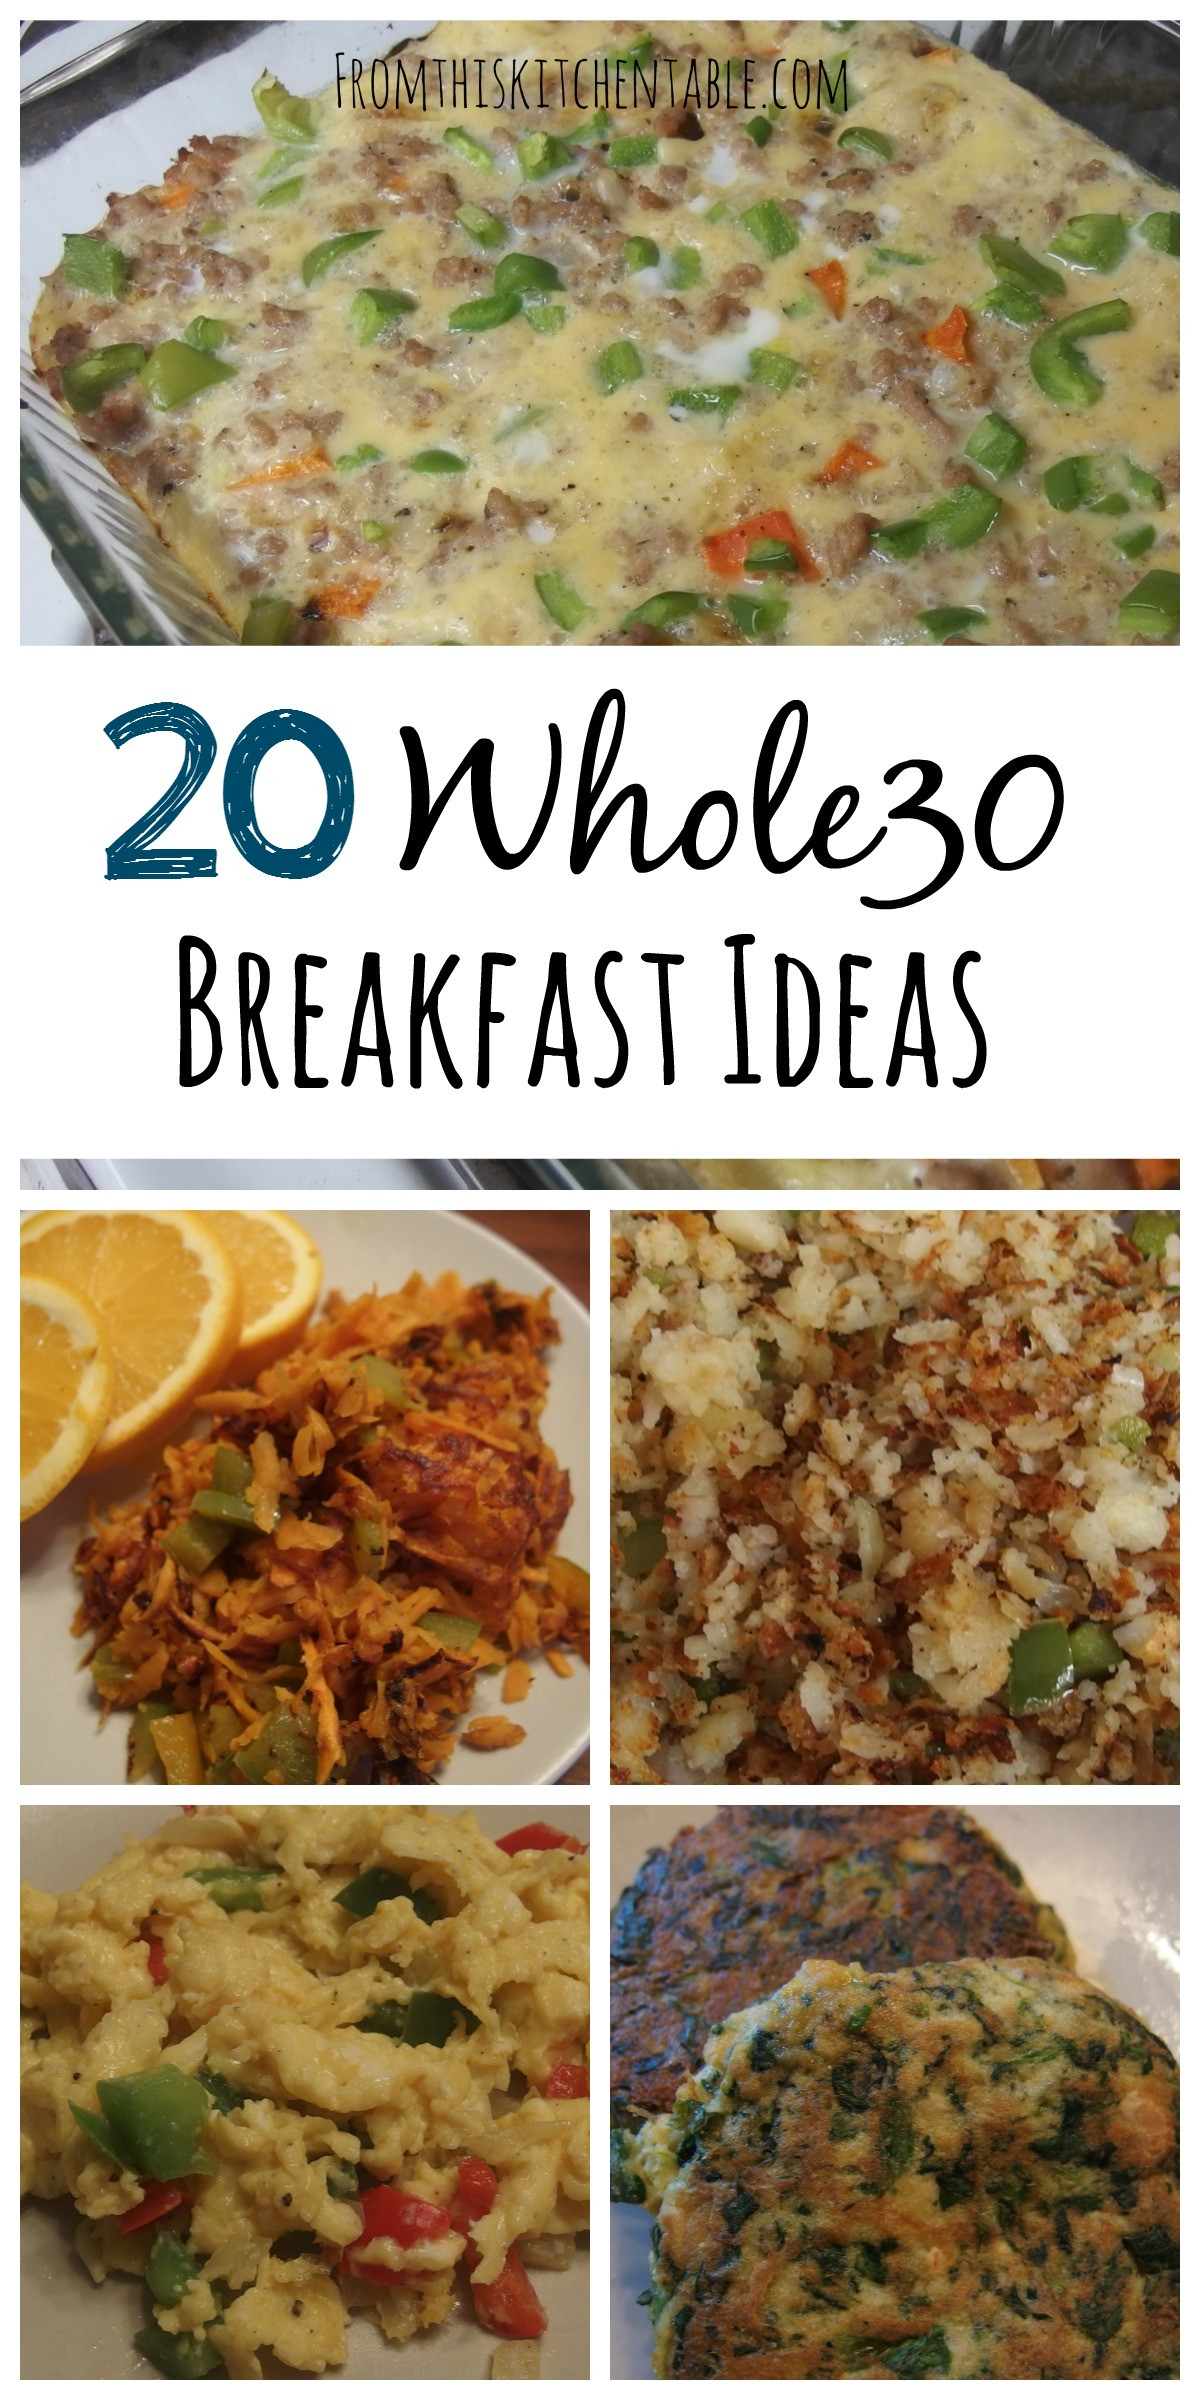 Whole 30 Recipes Breakfast  Whole30 Soup Recipes From This Kitchen Table